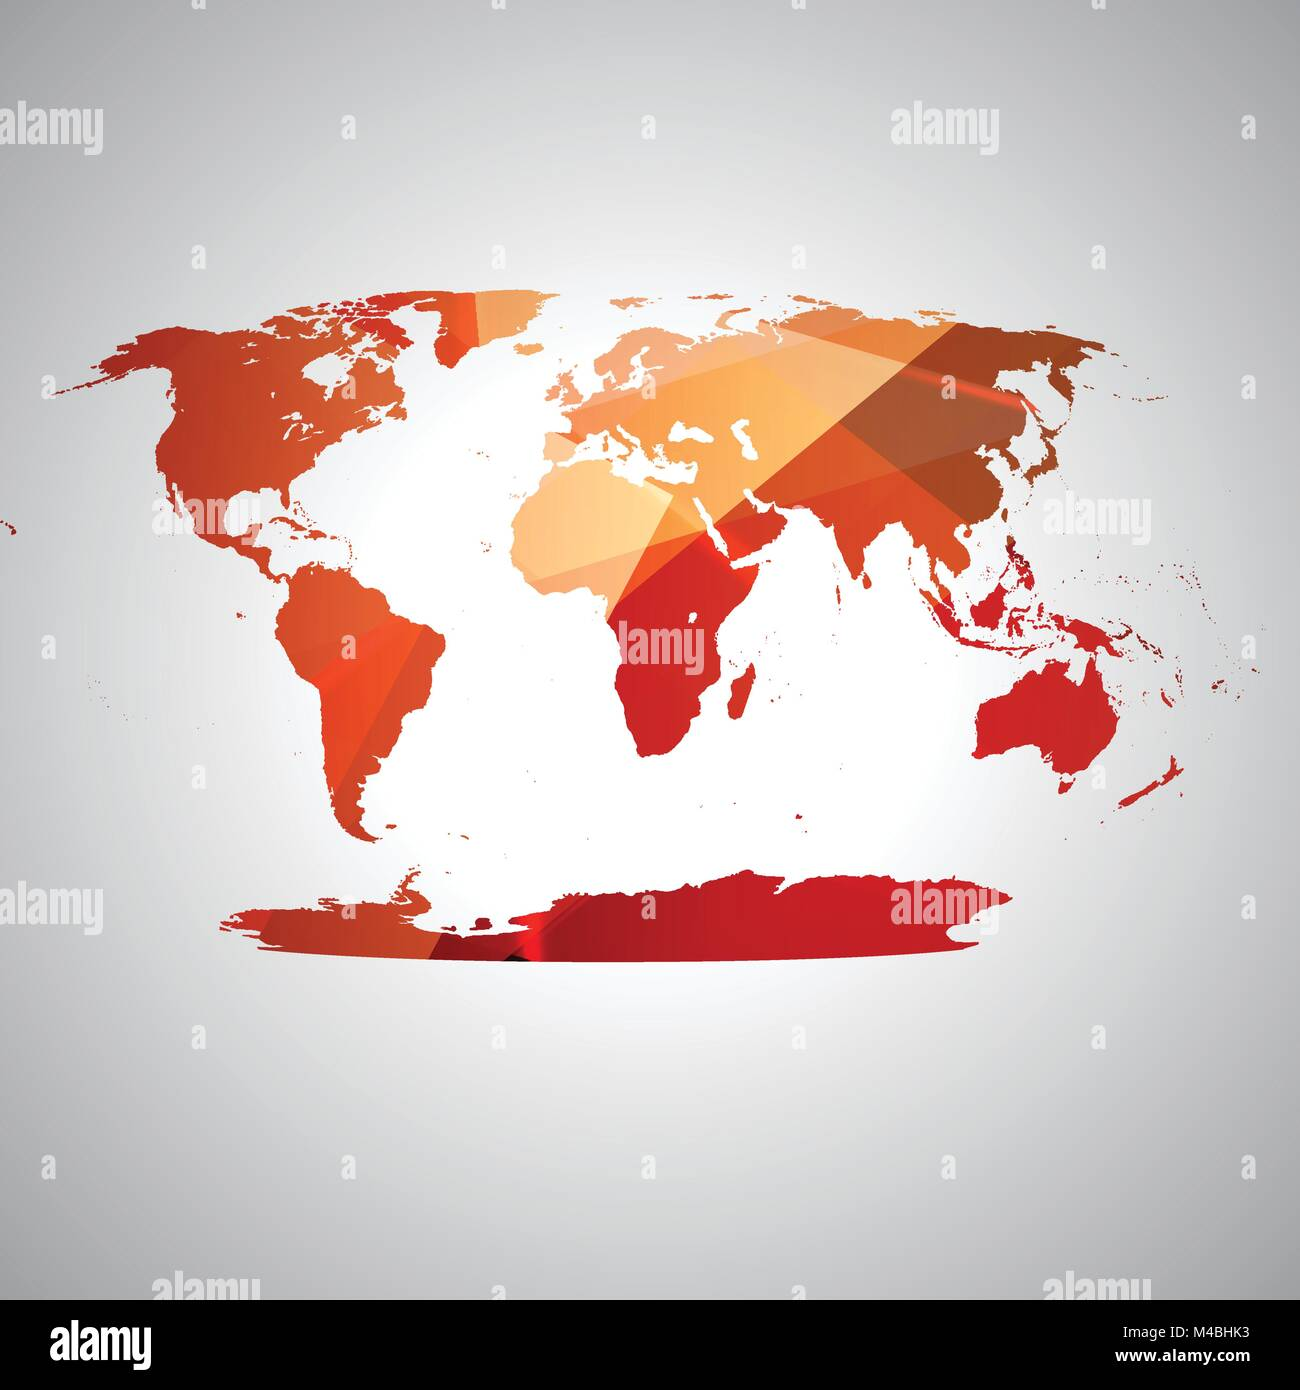 Colorful World Map Art.Colorful World Map Vector Stock Vector Art Illustration Vector